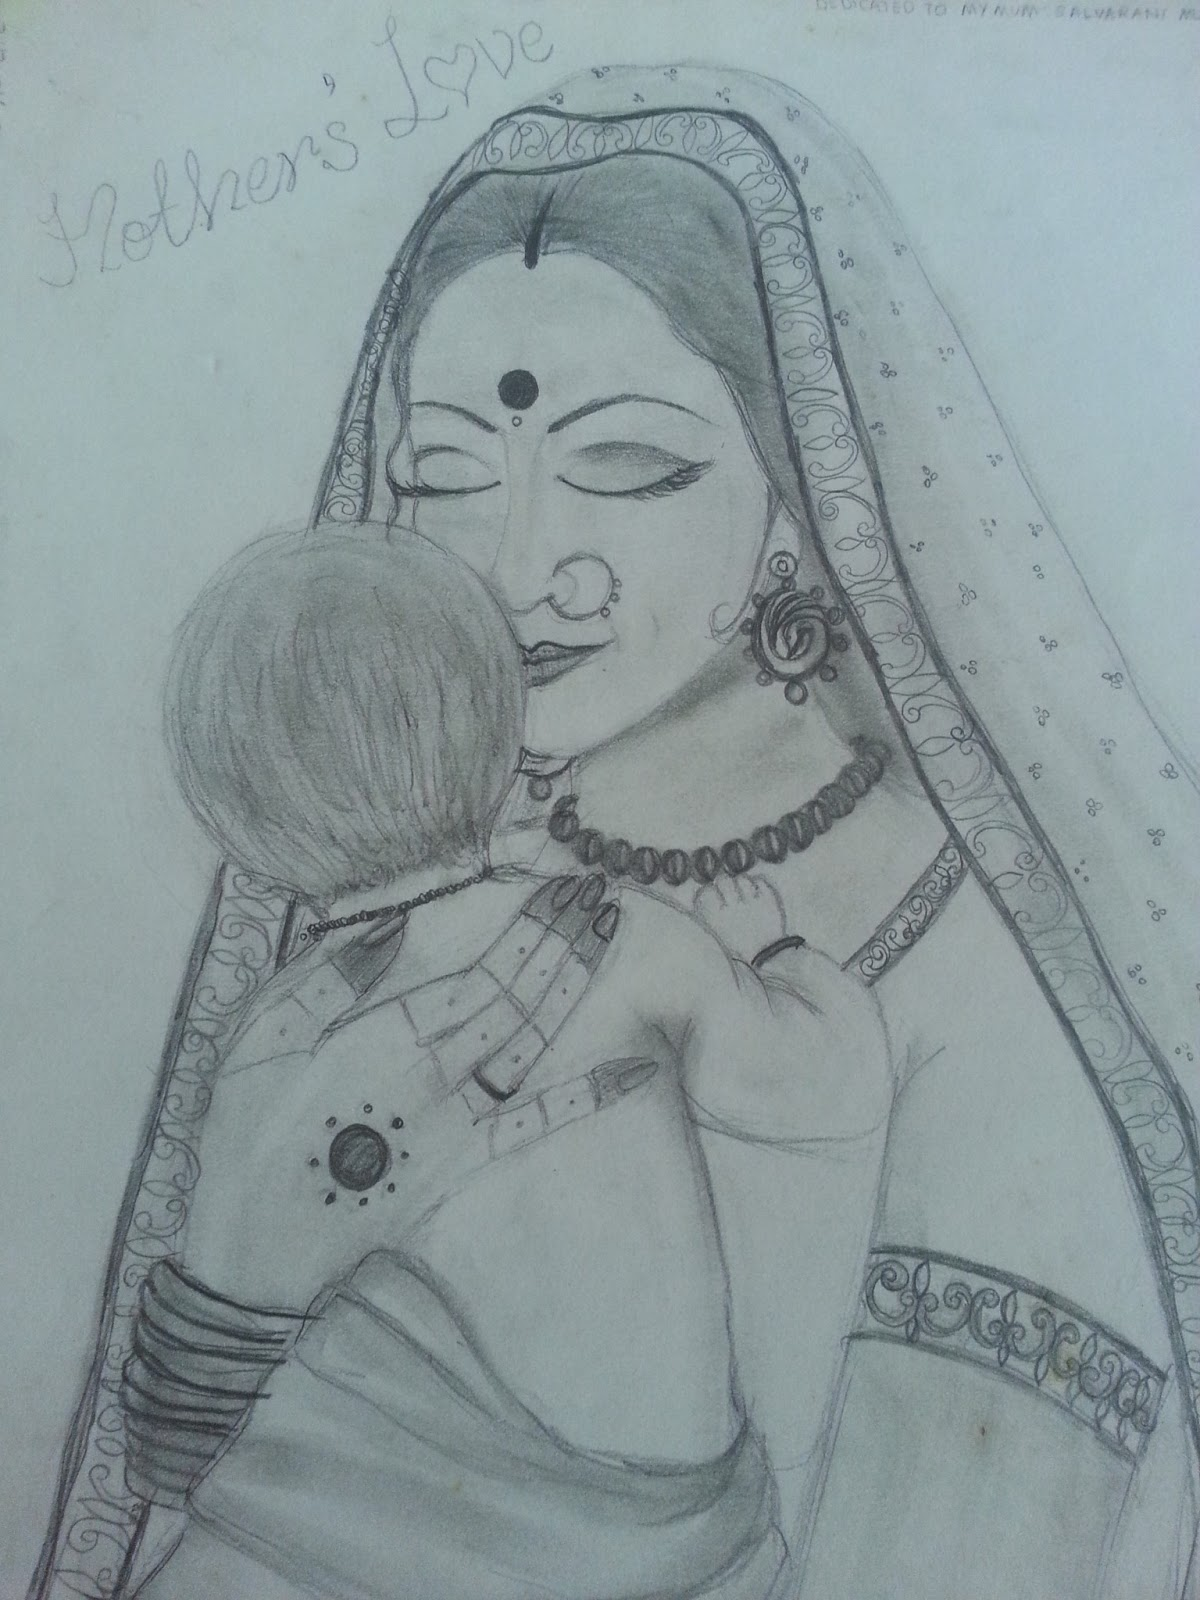 Pencil sketch and me